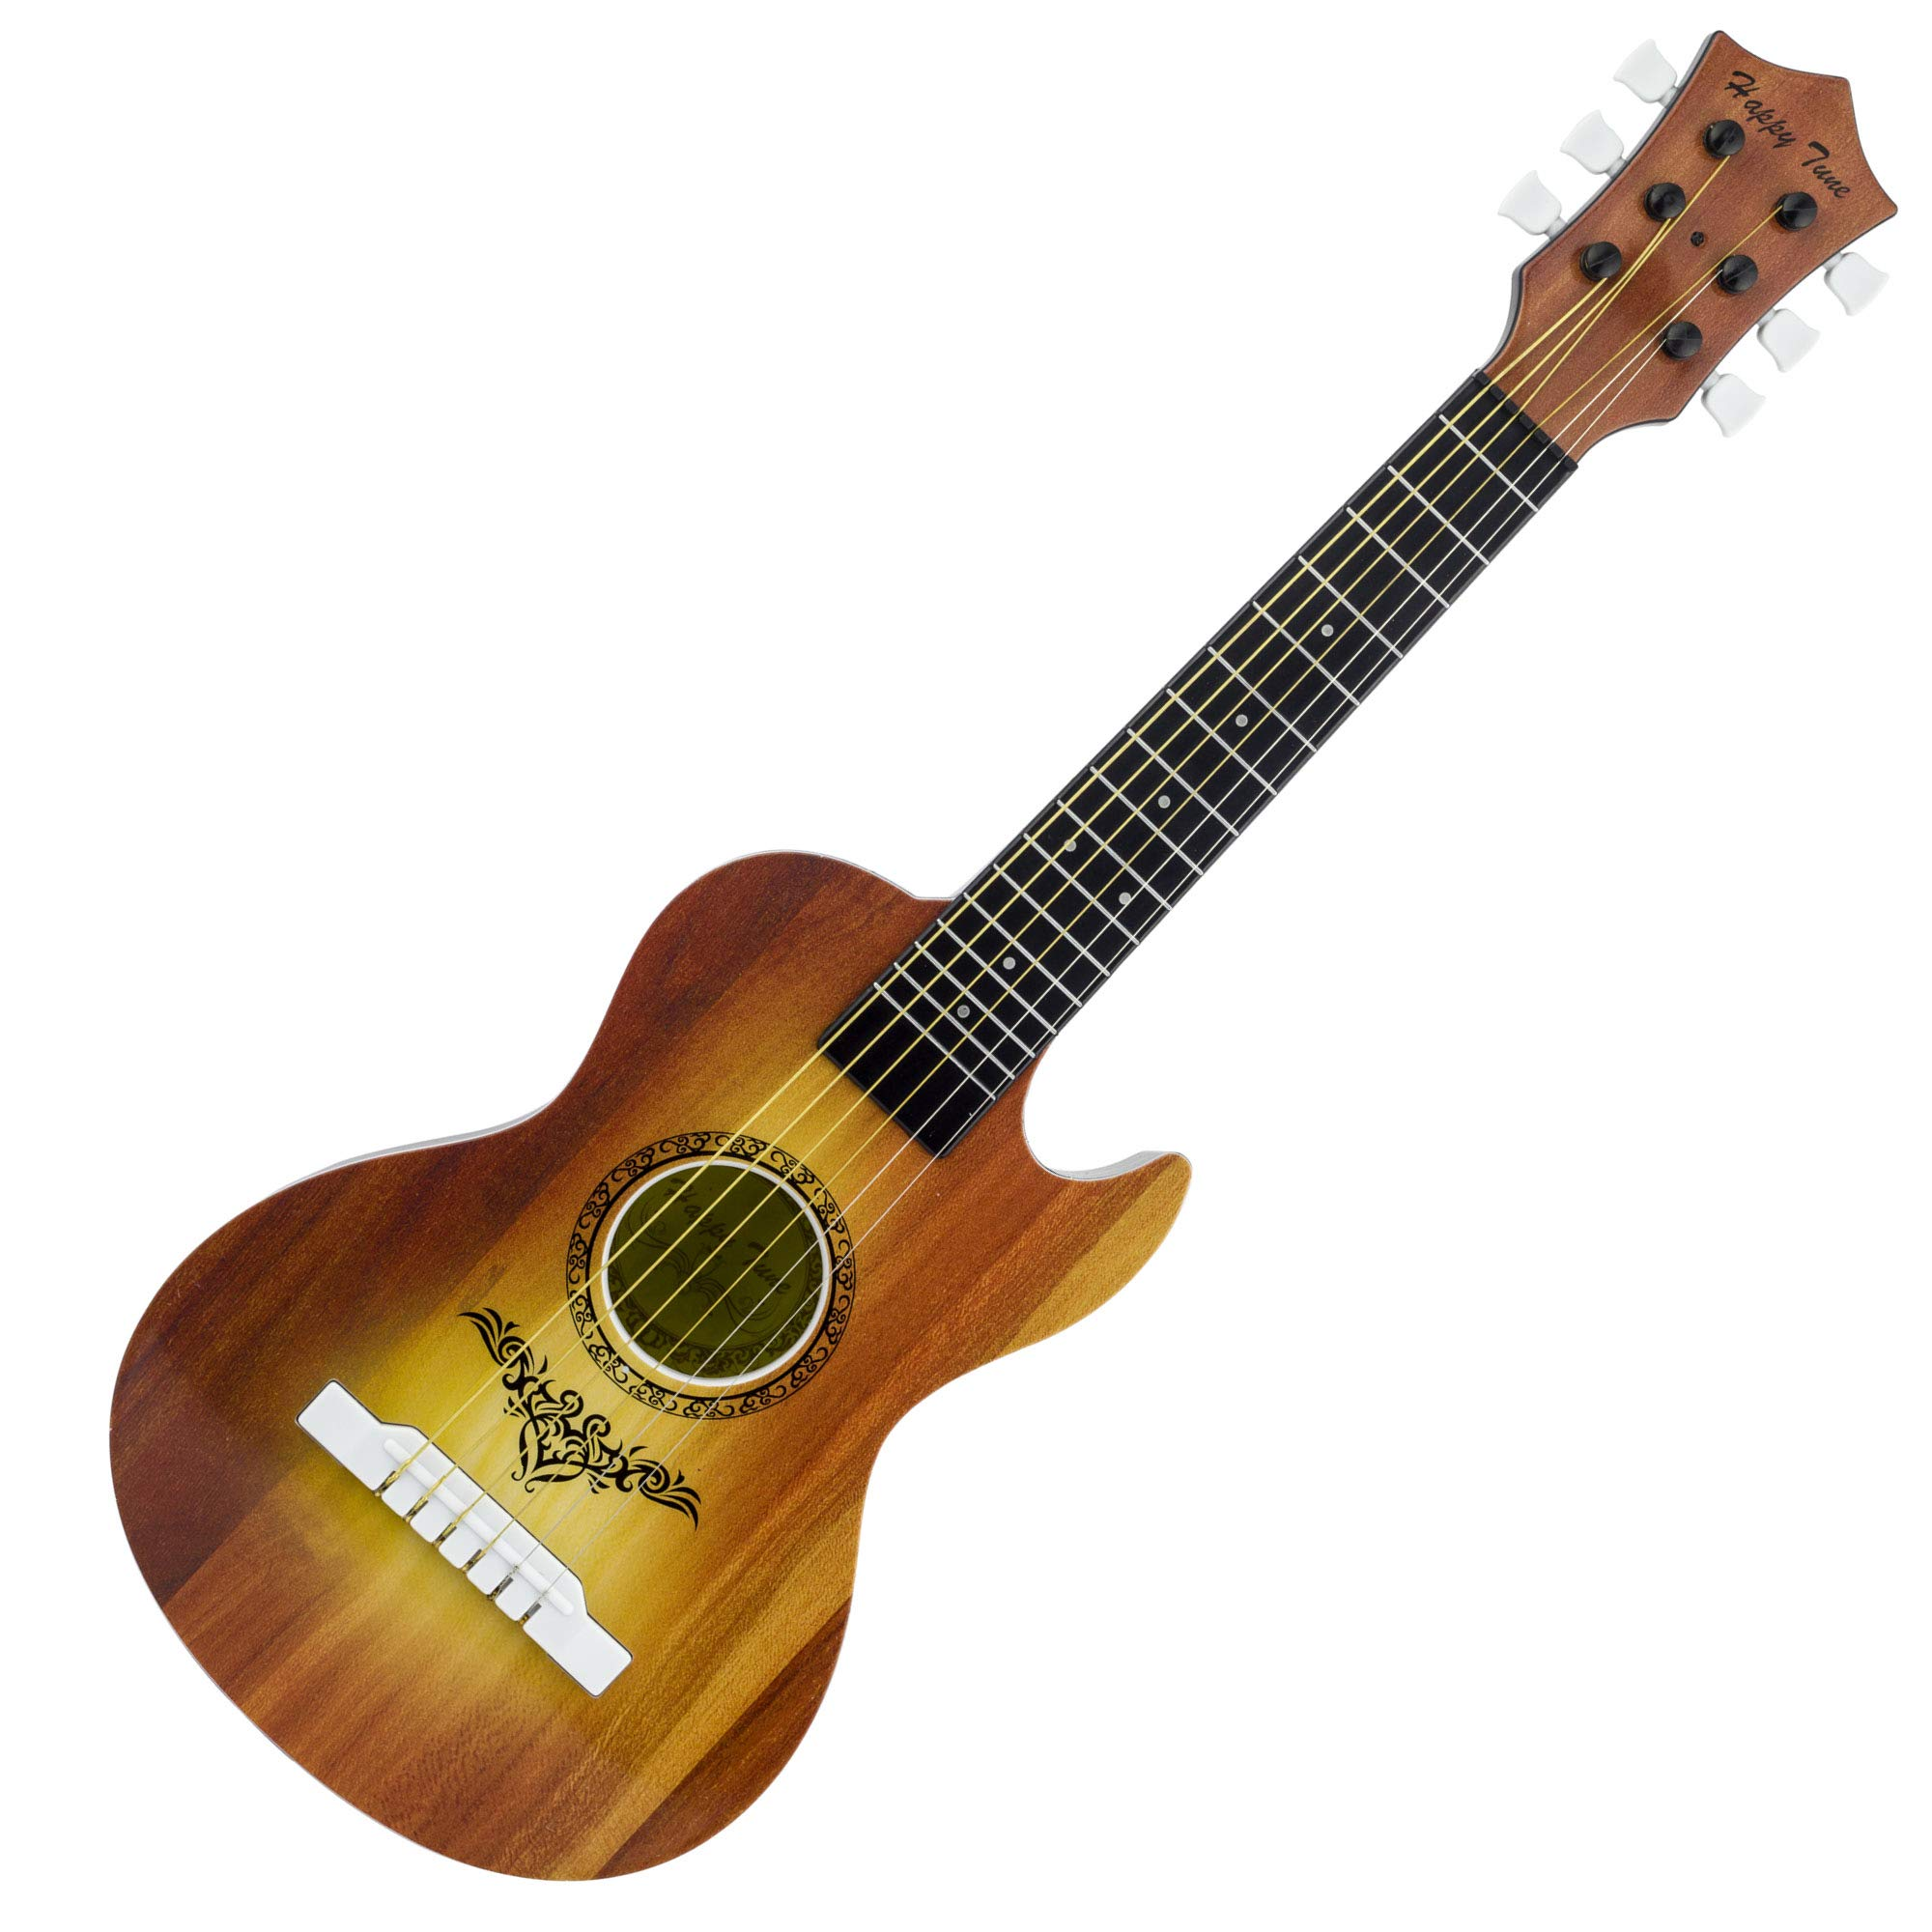 Liberty Imports Happy Tune 6 String Acoustic Guitar Toy for Kids with Vibrant Sounds and Tunable Strings (Brown) by Liberty Imports